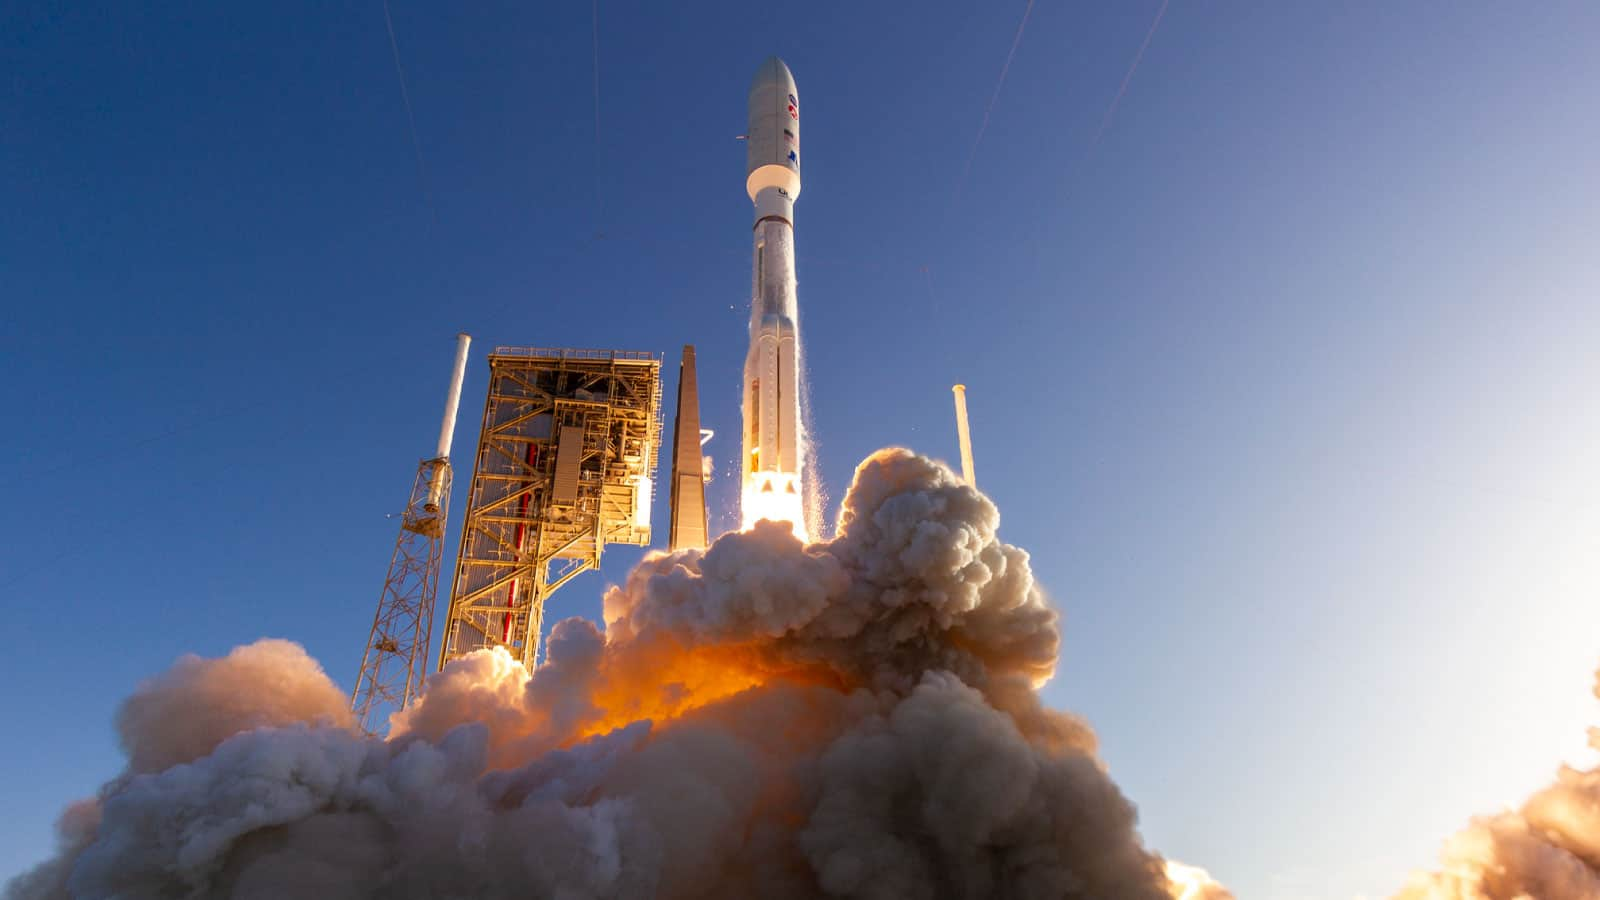 Mars 2020: NASA successfully launched perseverance rover into space ( 30 July 2020 )